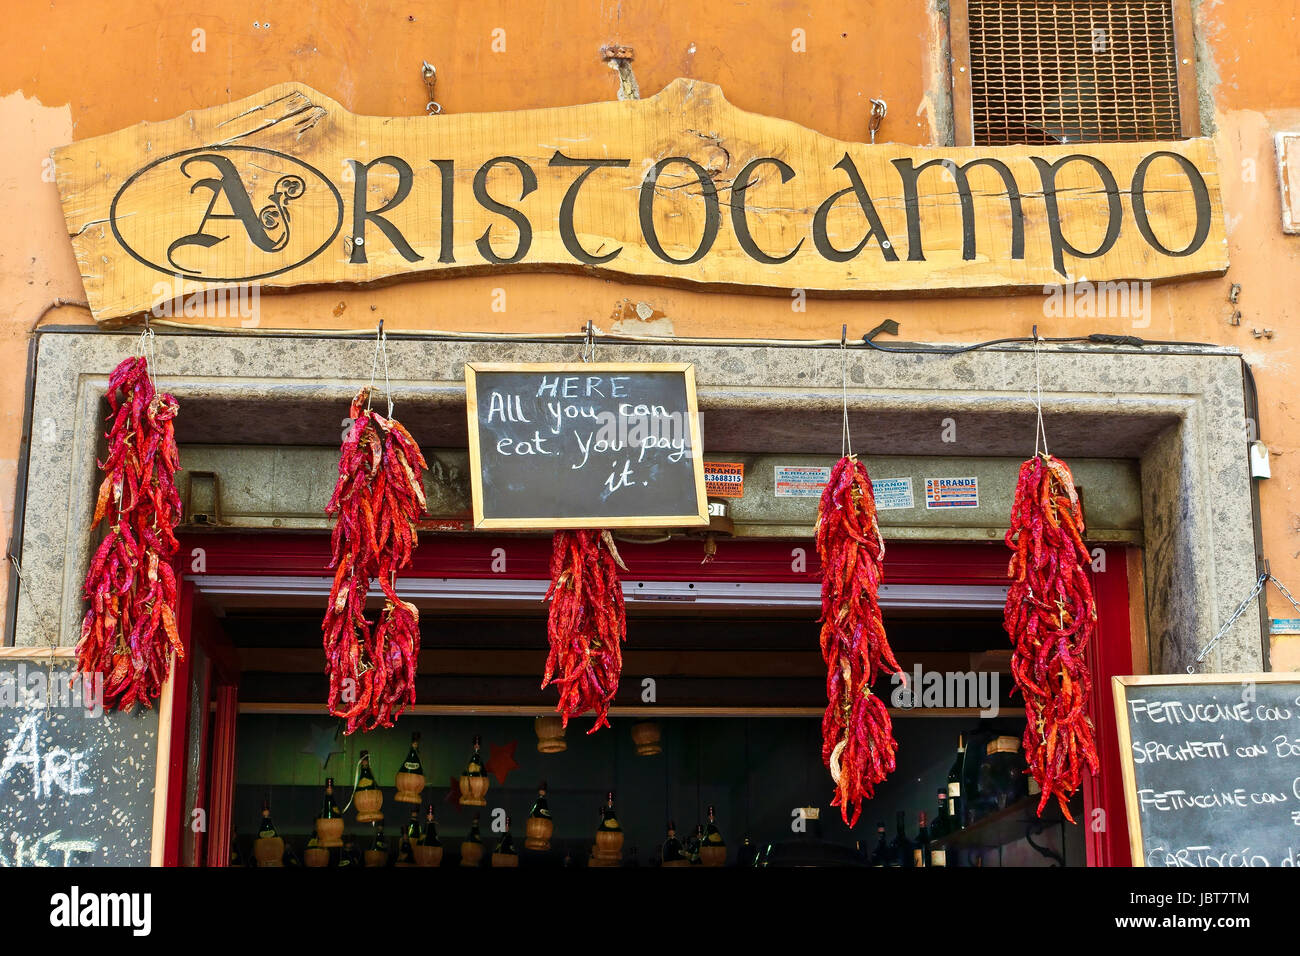 Restaurant in a alley in Trtastevere, typical characteristic roman borough. Restaurant sign and hung red chili peppers. - Stock Image